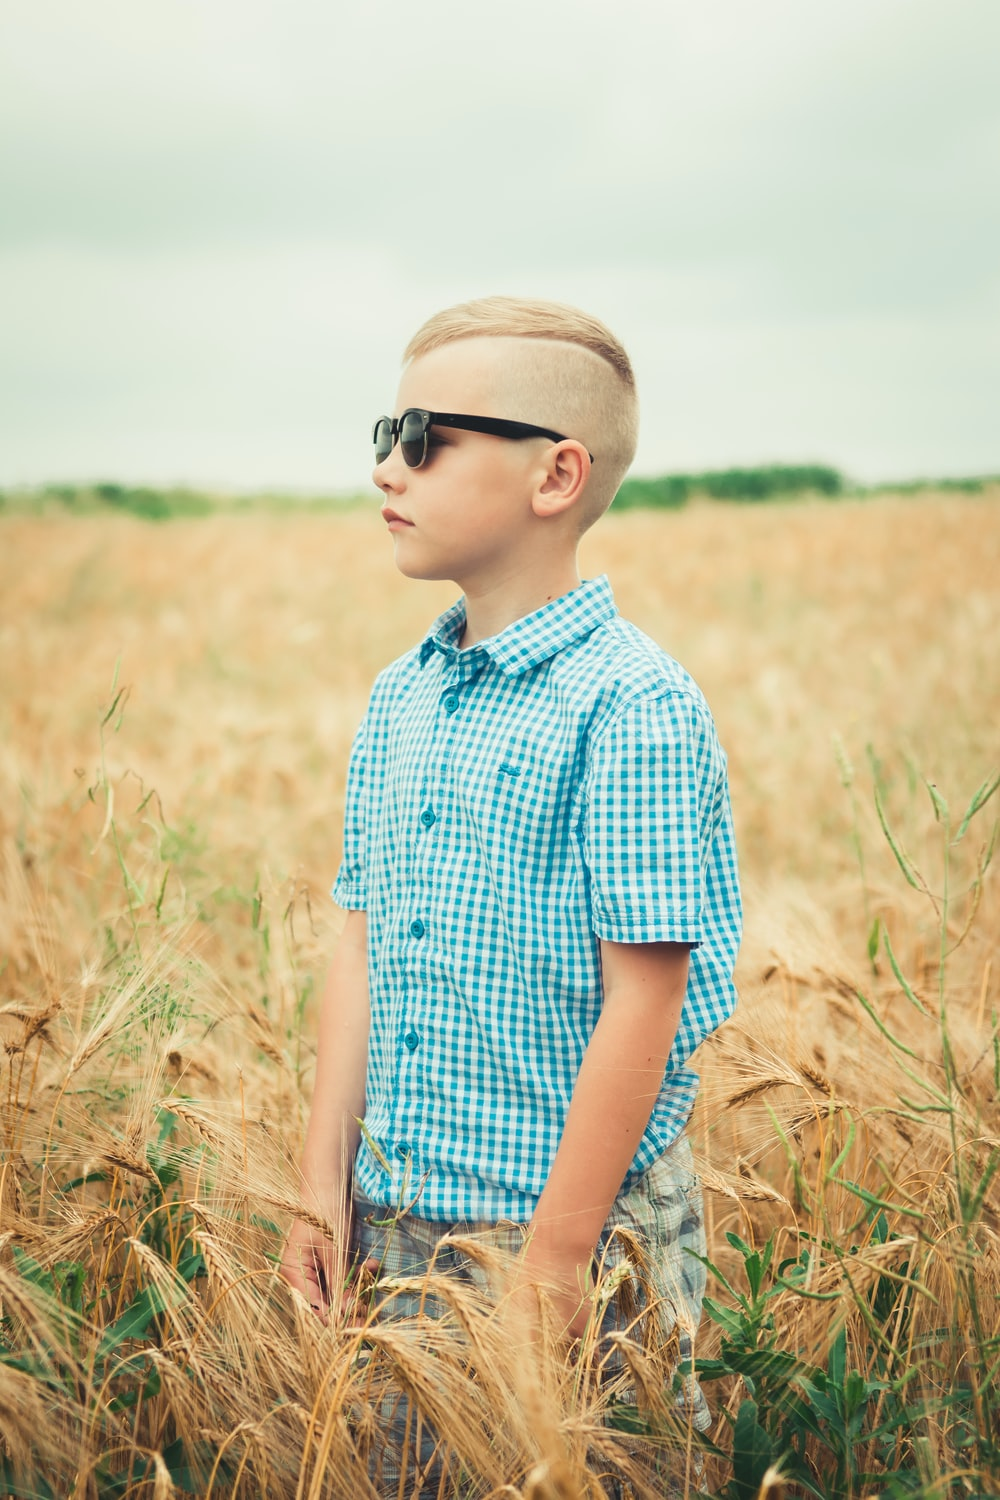 boy in blue and white collared shirt